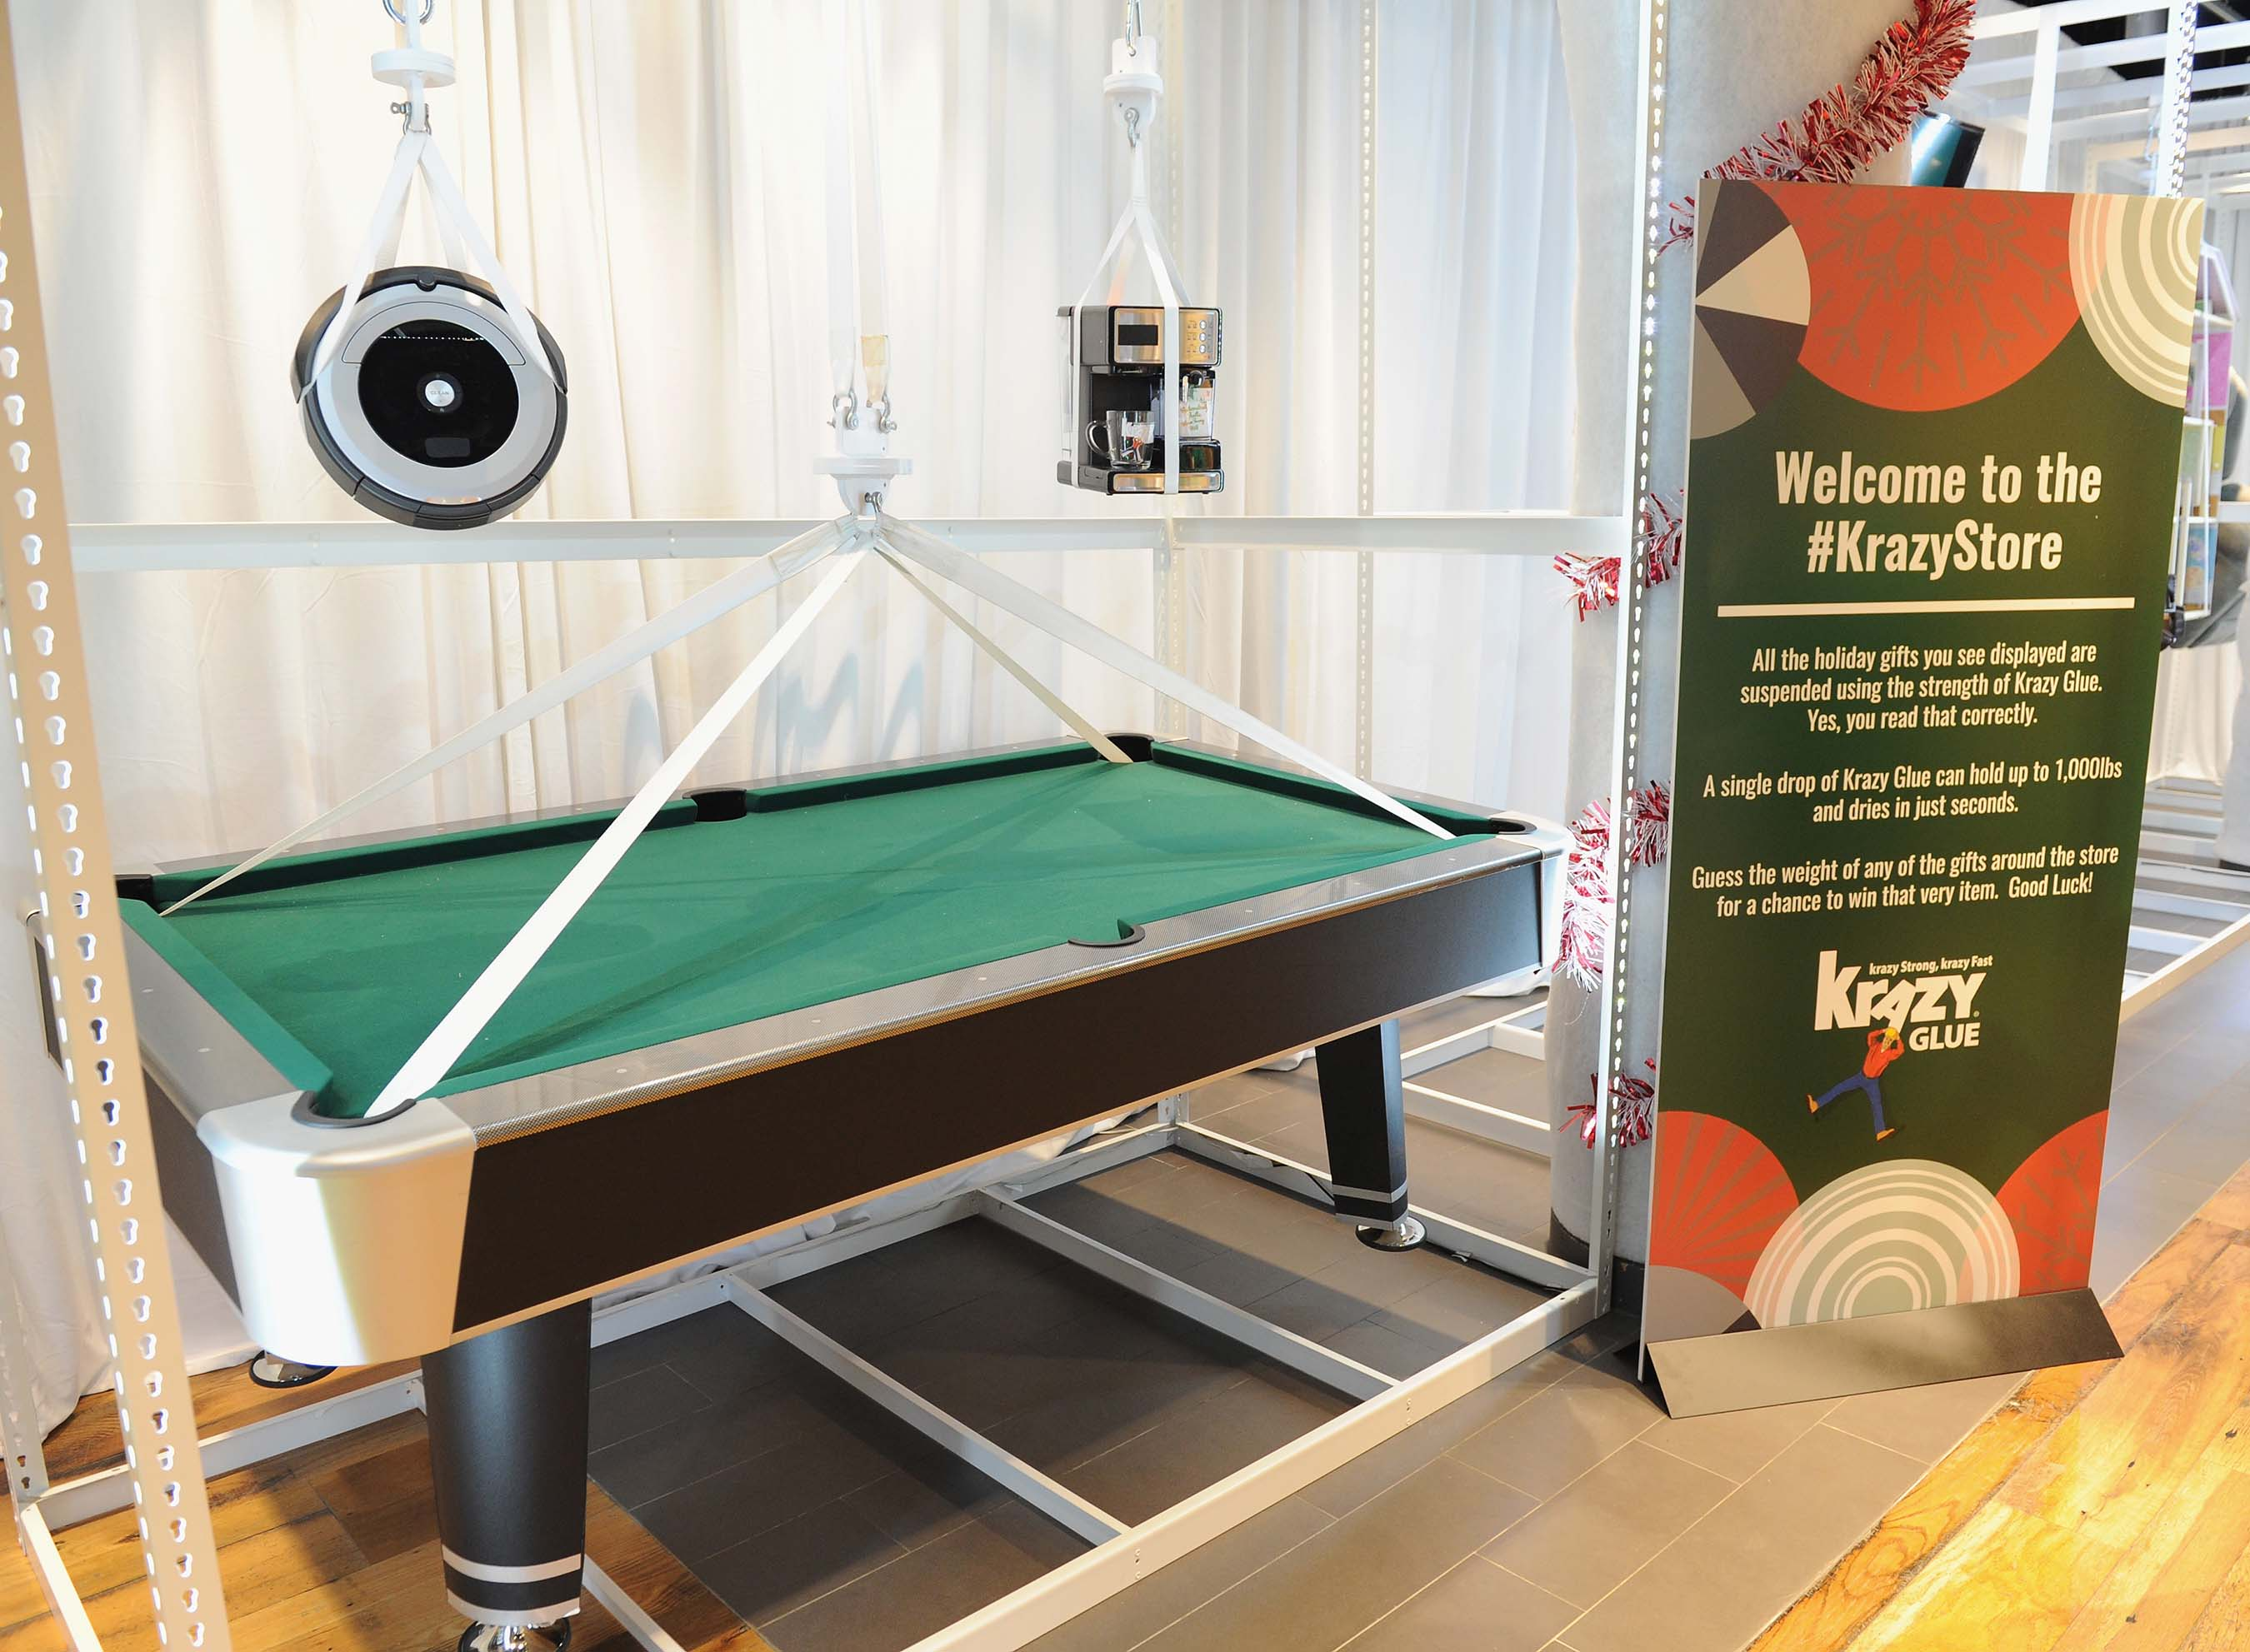 Krazy Glue Creates The Craziest Holiday Store Yet - The pool table store